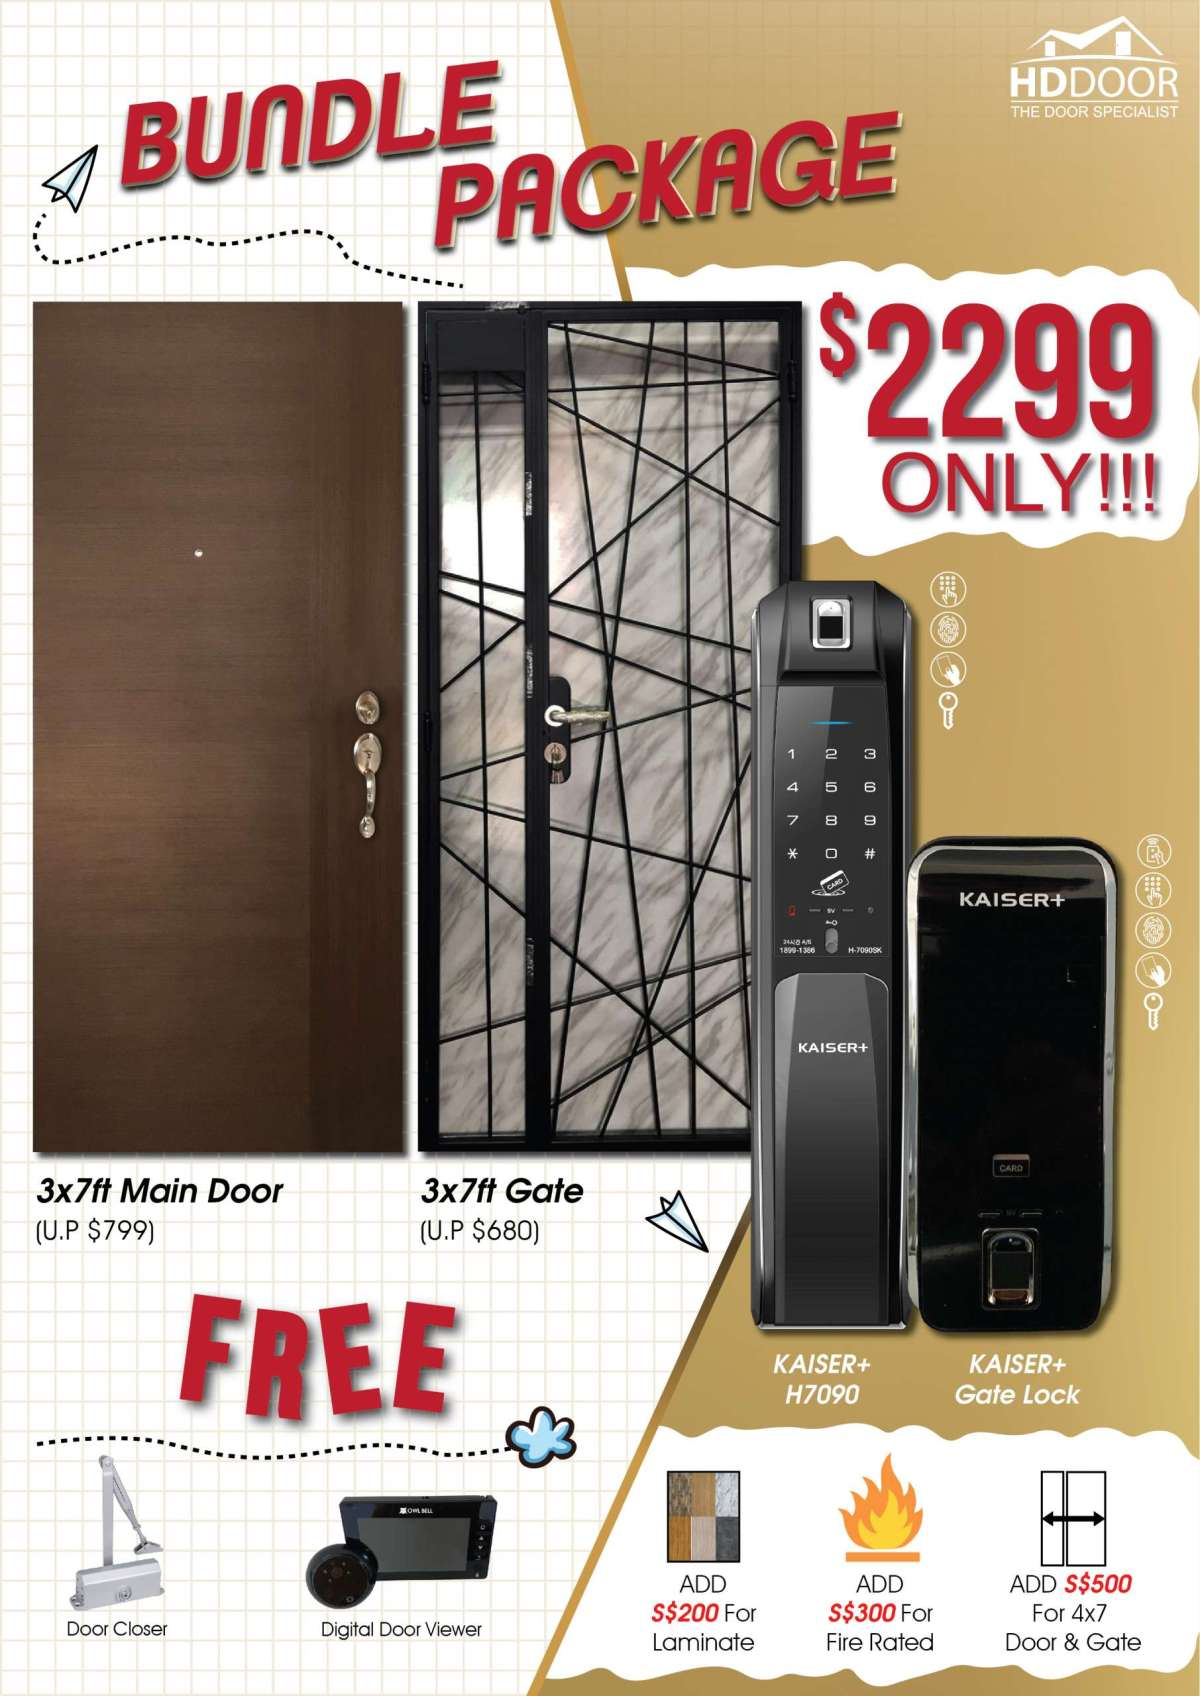 Kaiser H7090 Kaiser gate digital lock bundle promotion 2020